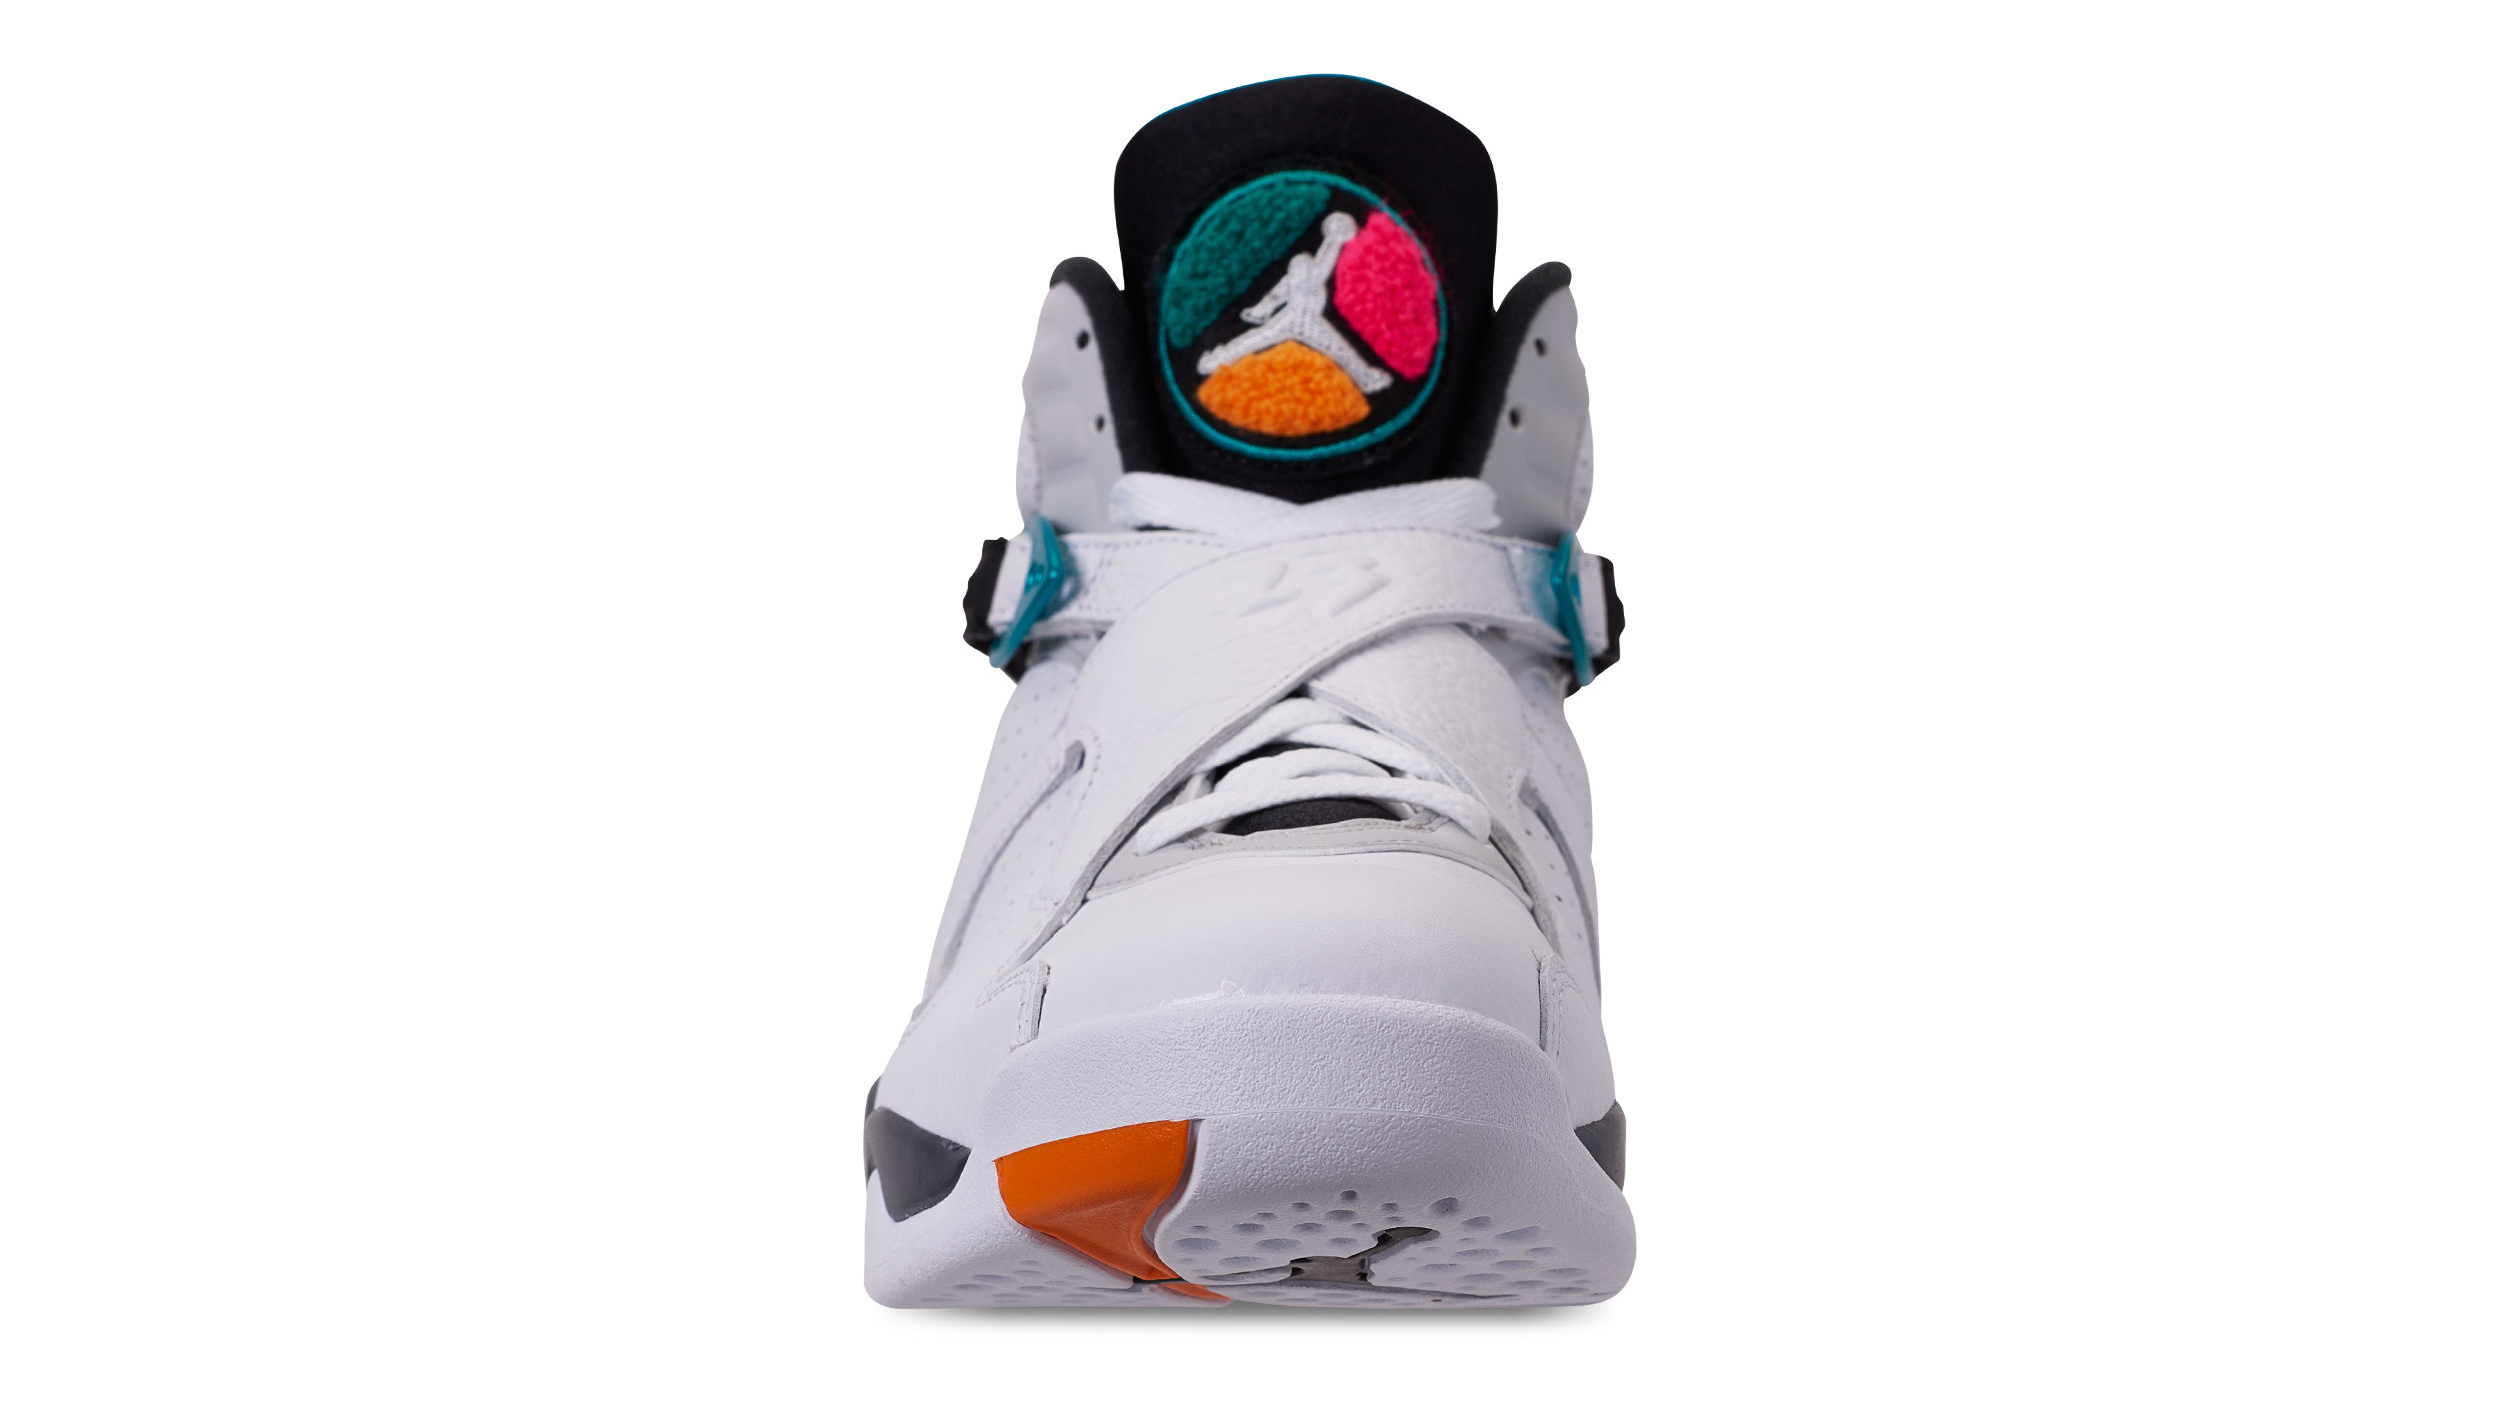 62863da9160059 ... cheap air jordan 8 this year. is anyone interested in this shoe or do  you